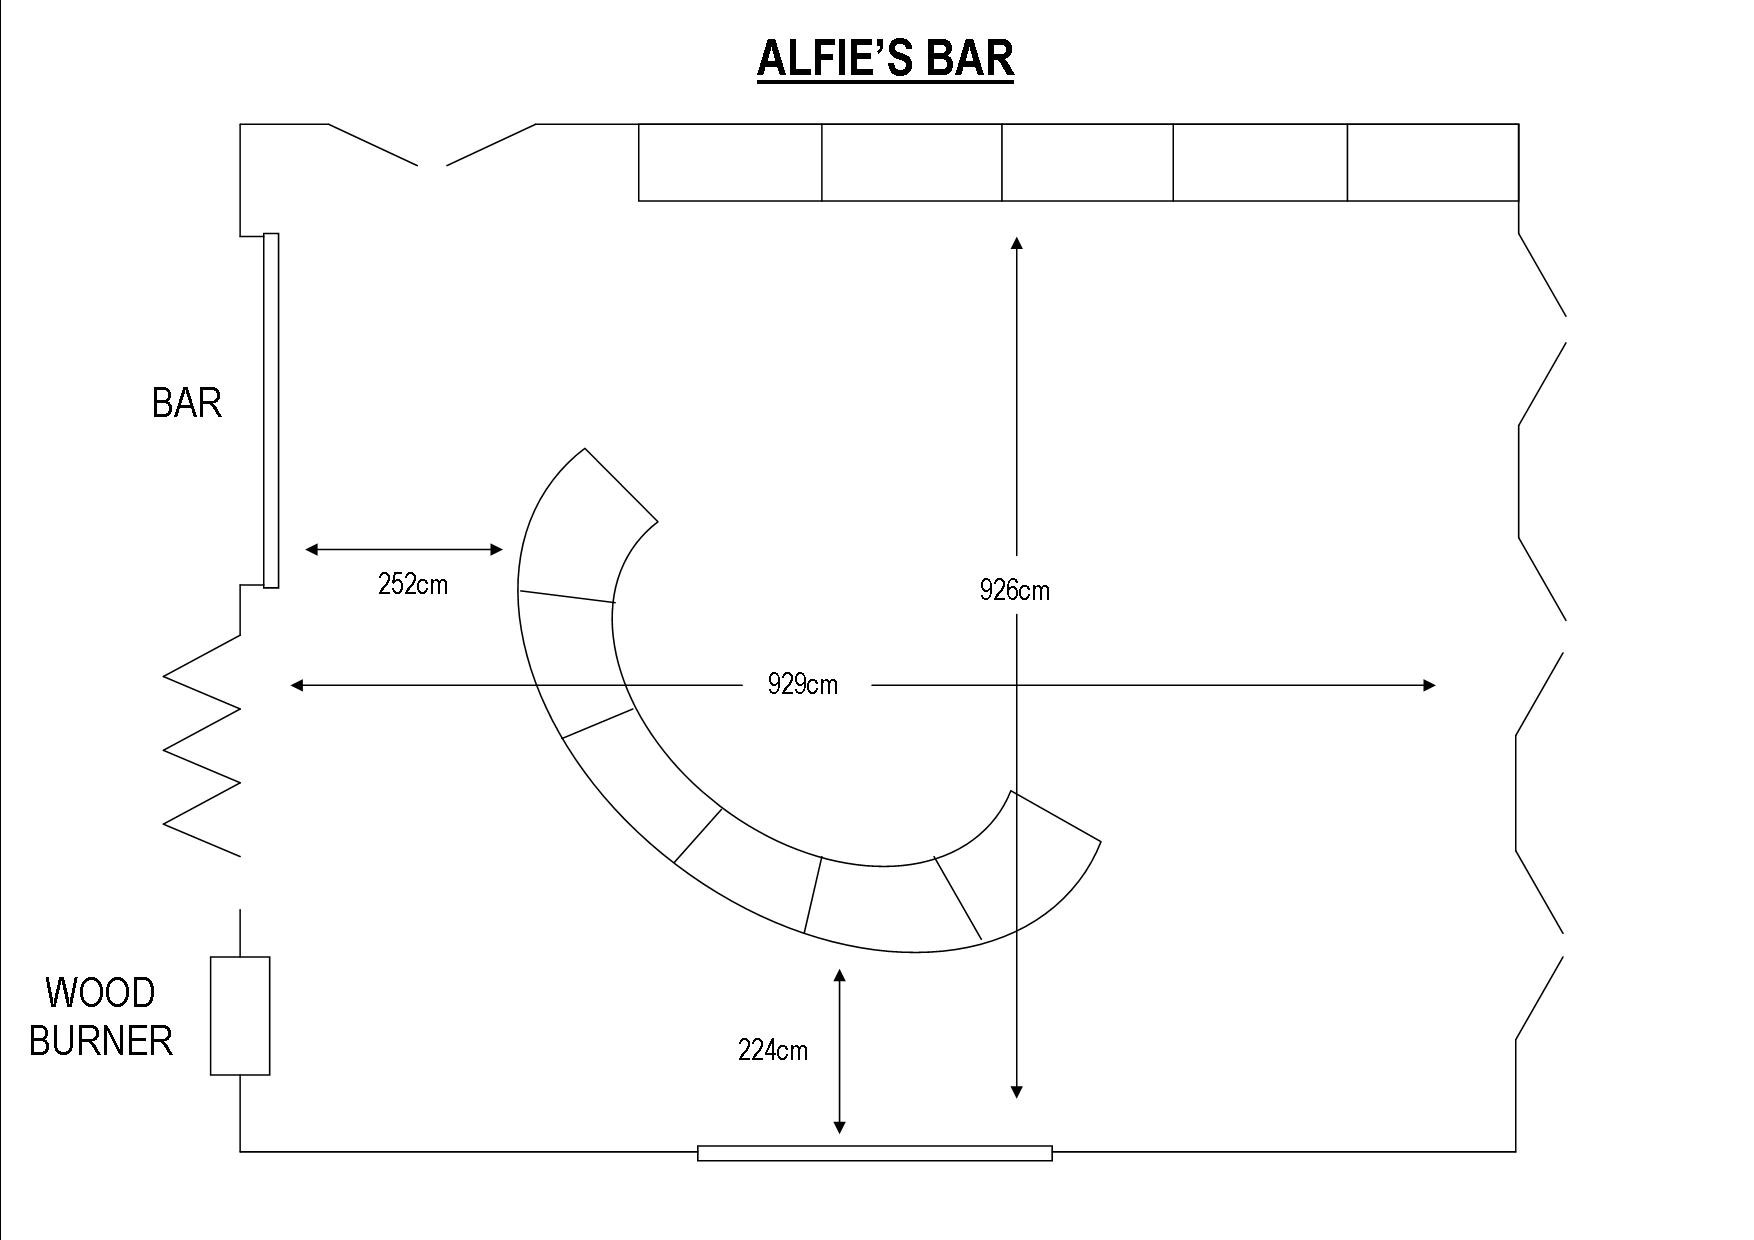 Alfie's Bar at Colne Valley Golf Club